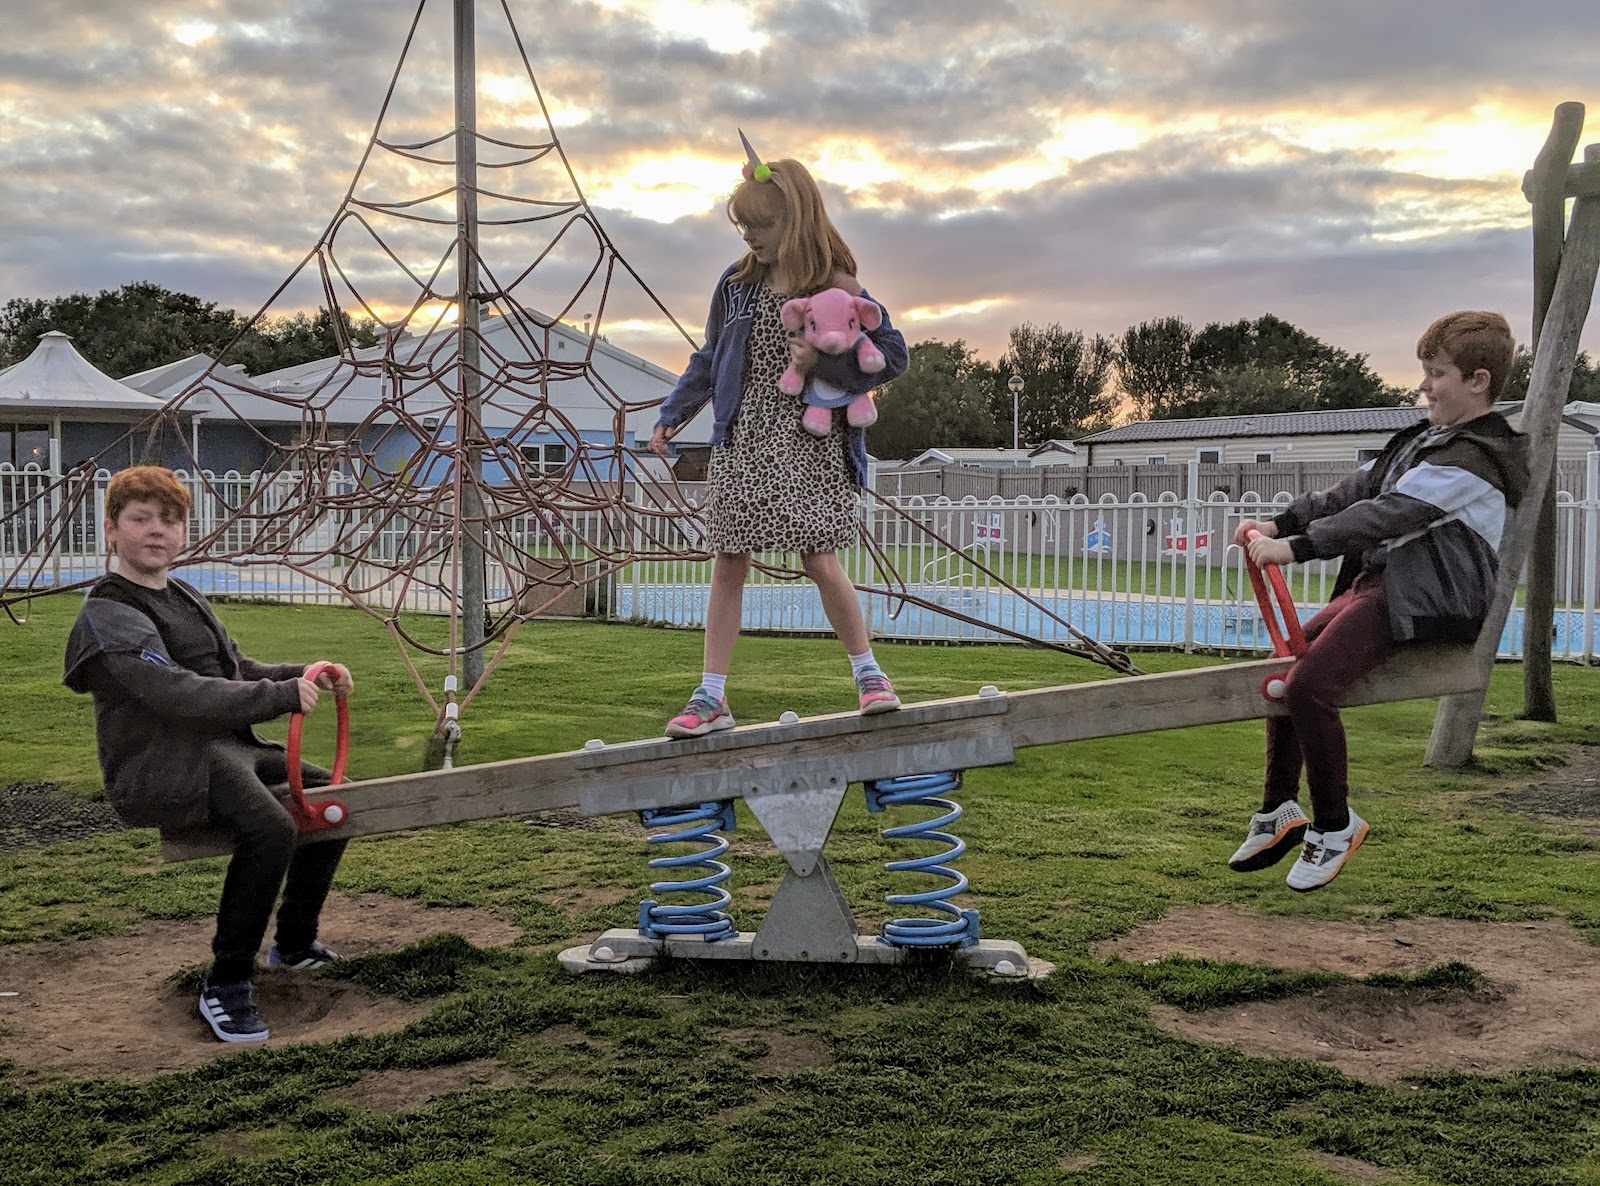 Things to do in Berwick - Haven Berwick play park